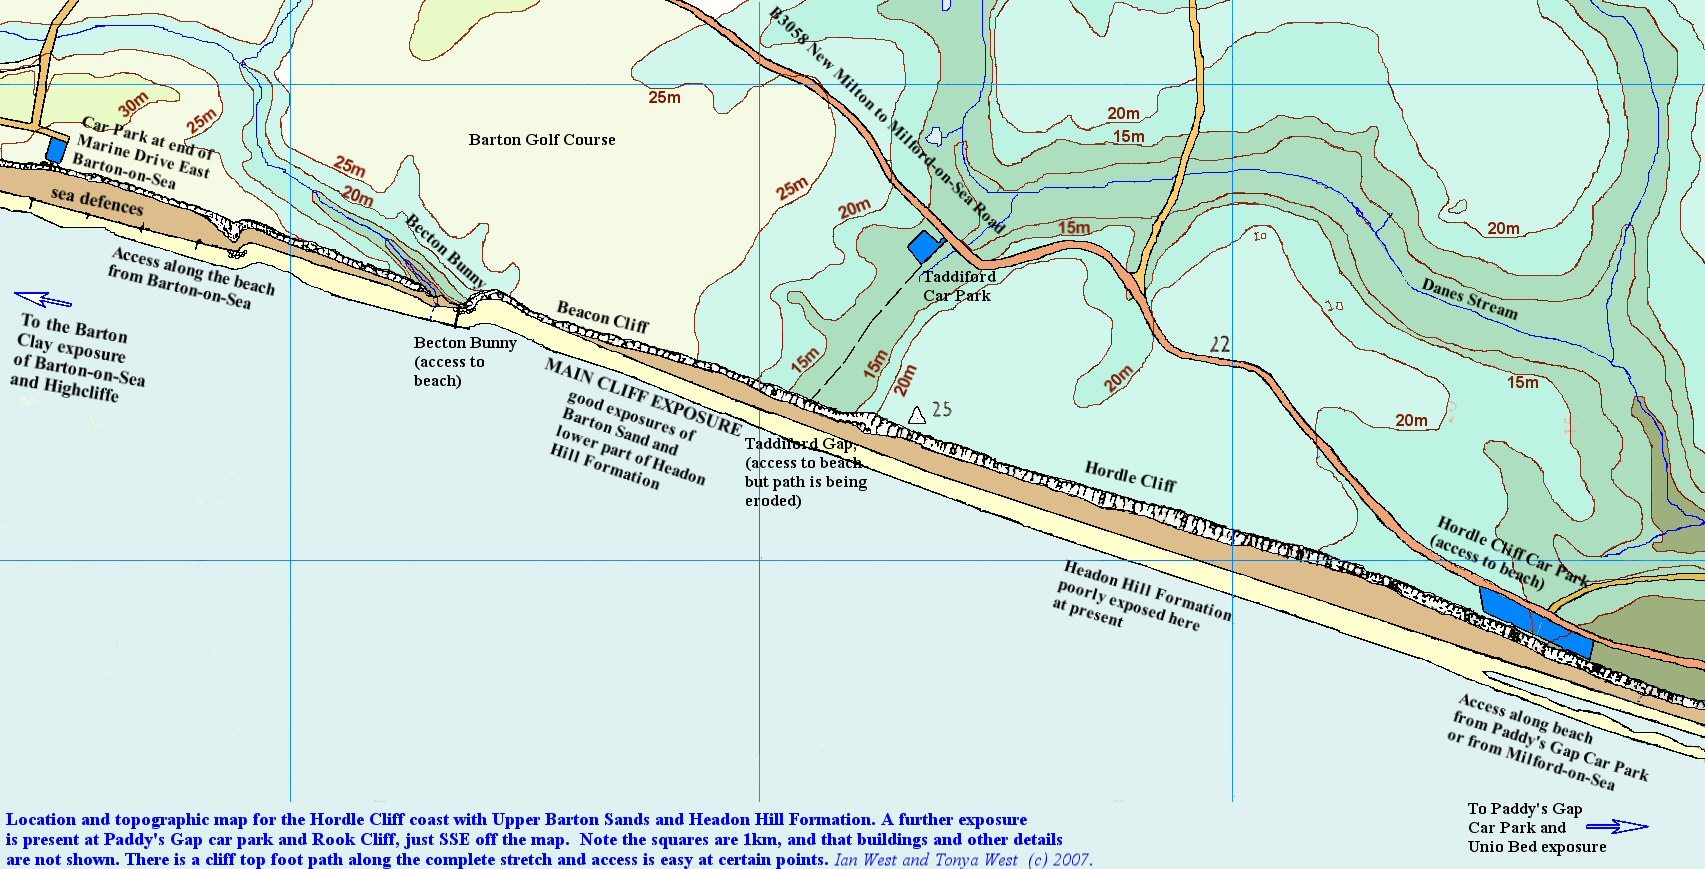 Geology of hordle cliff hampshire topographic and location map for the geology of hordle cliff hampshire pooptronica Image collections